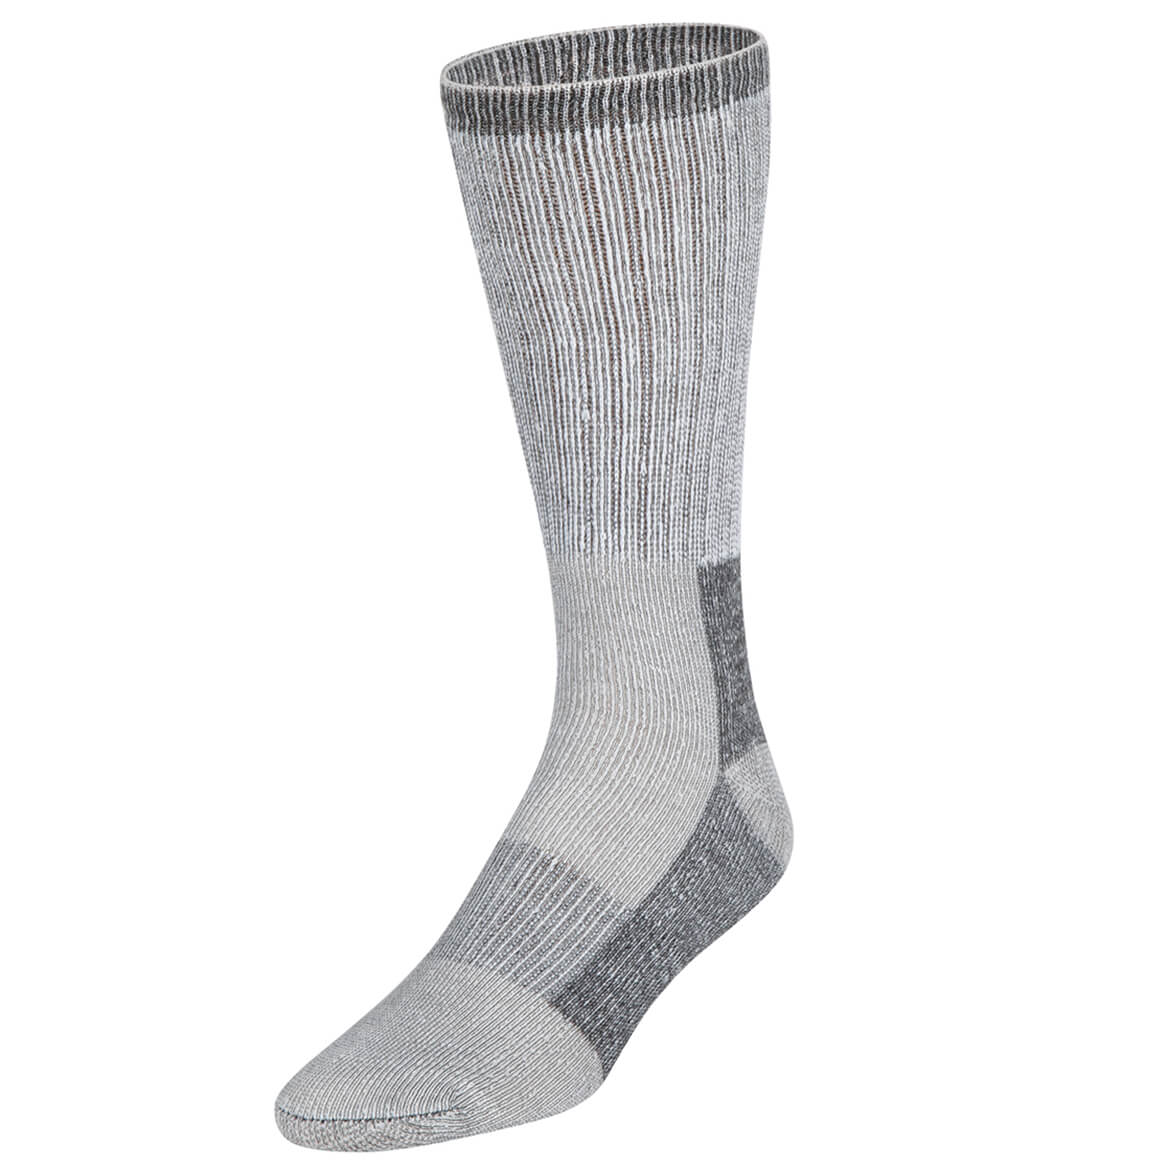 Extreme Weather Thermal Socks 2 Pairs-370010